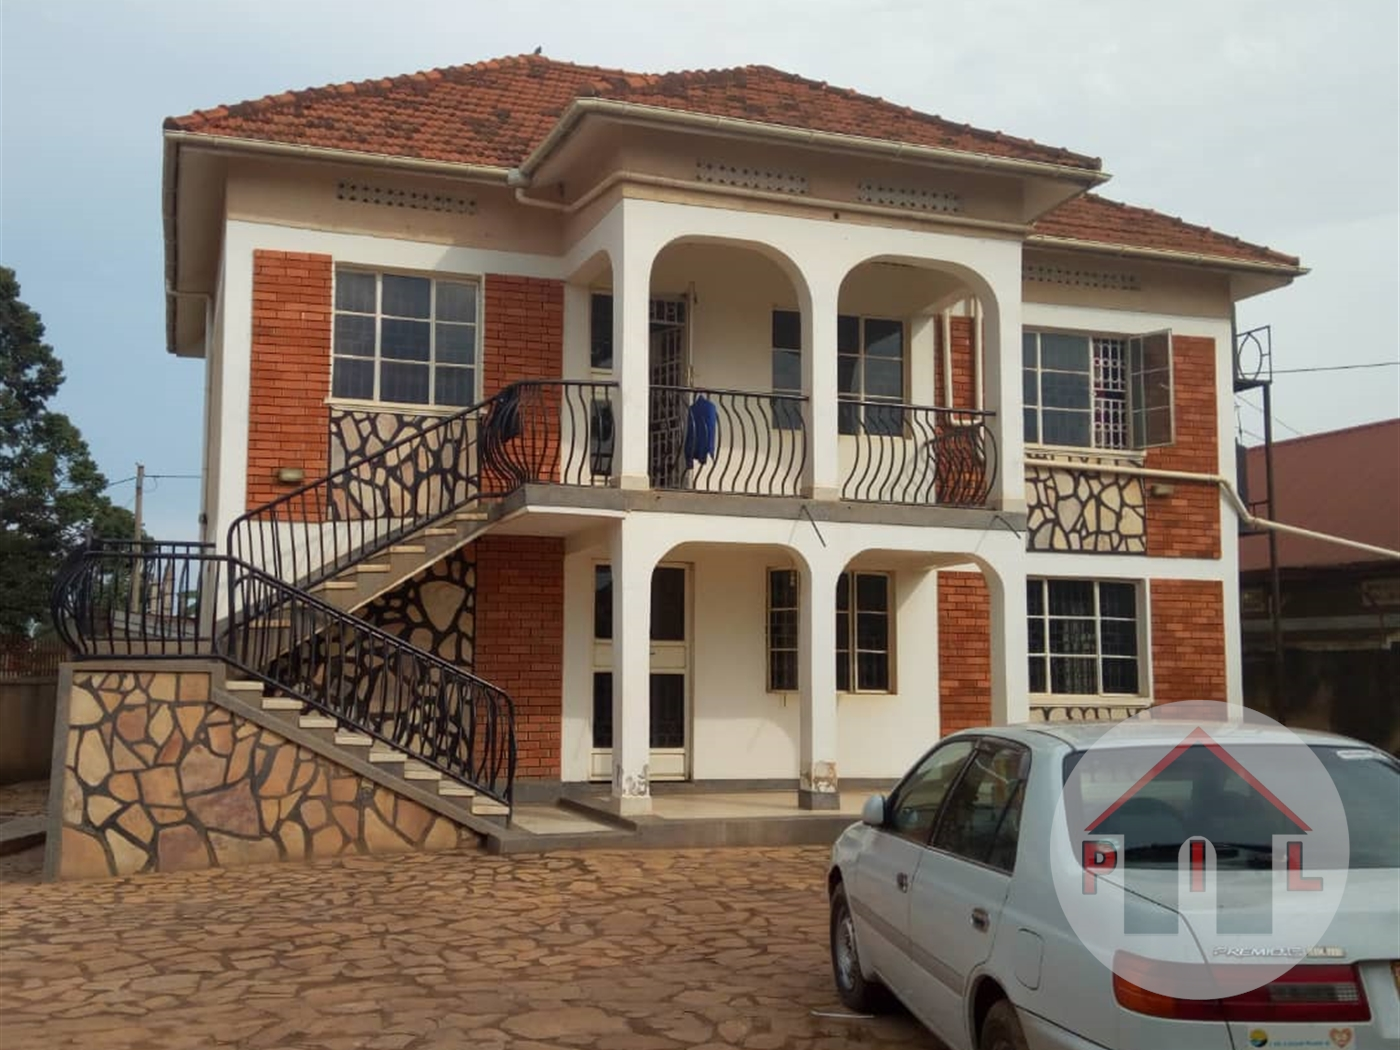 Storyed house for sale in Kyengera Wakiso